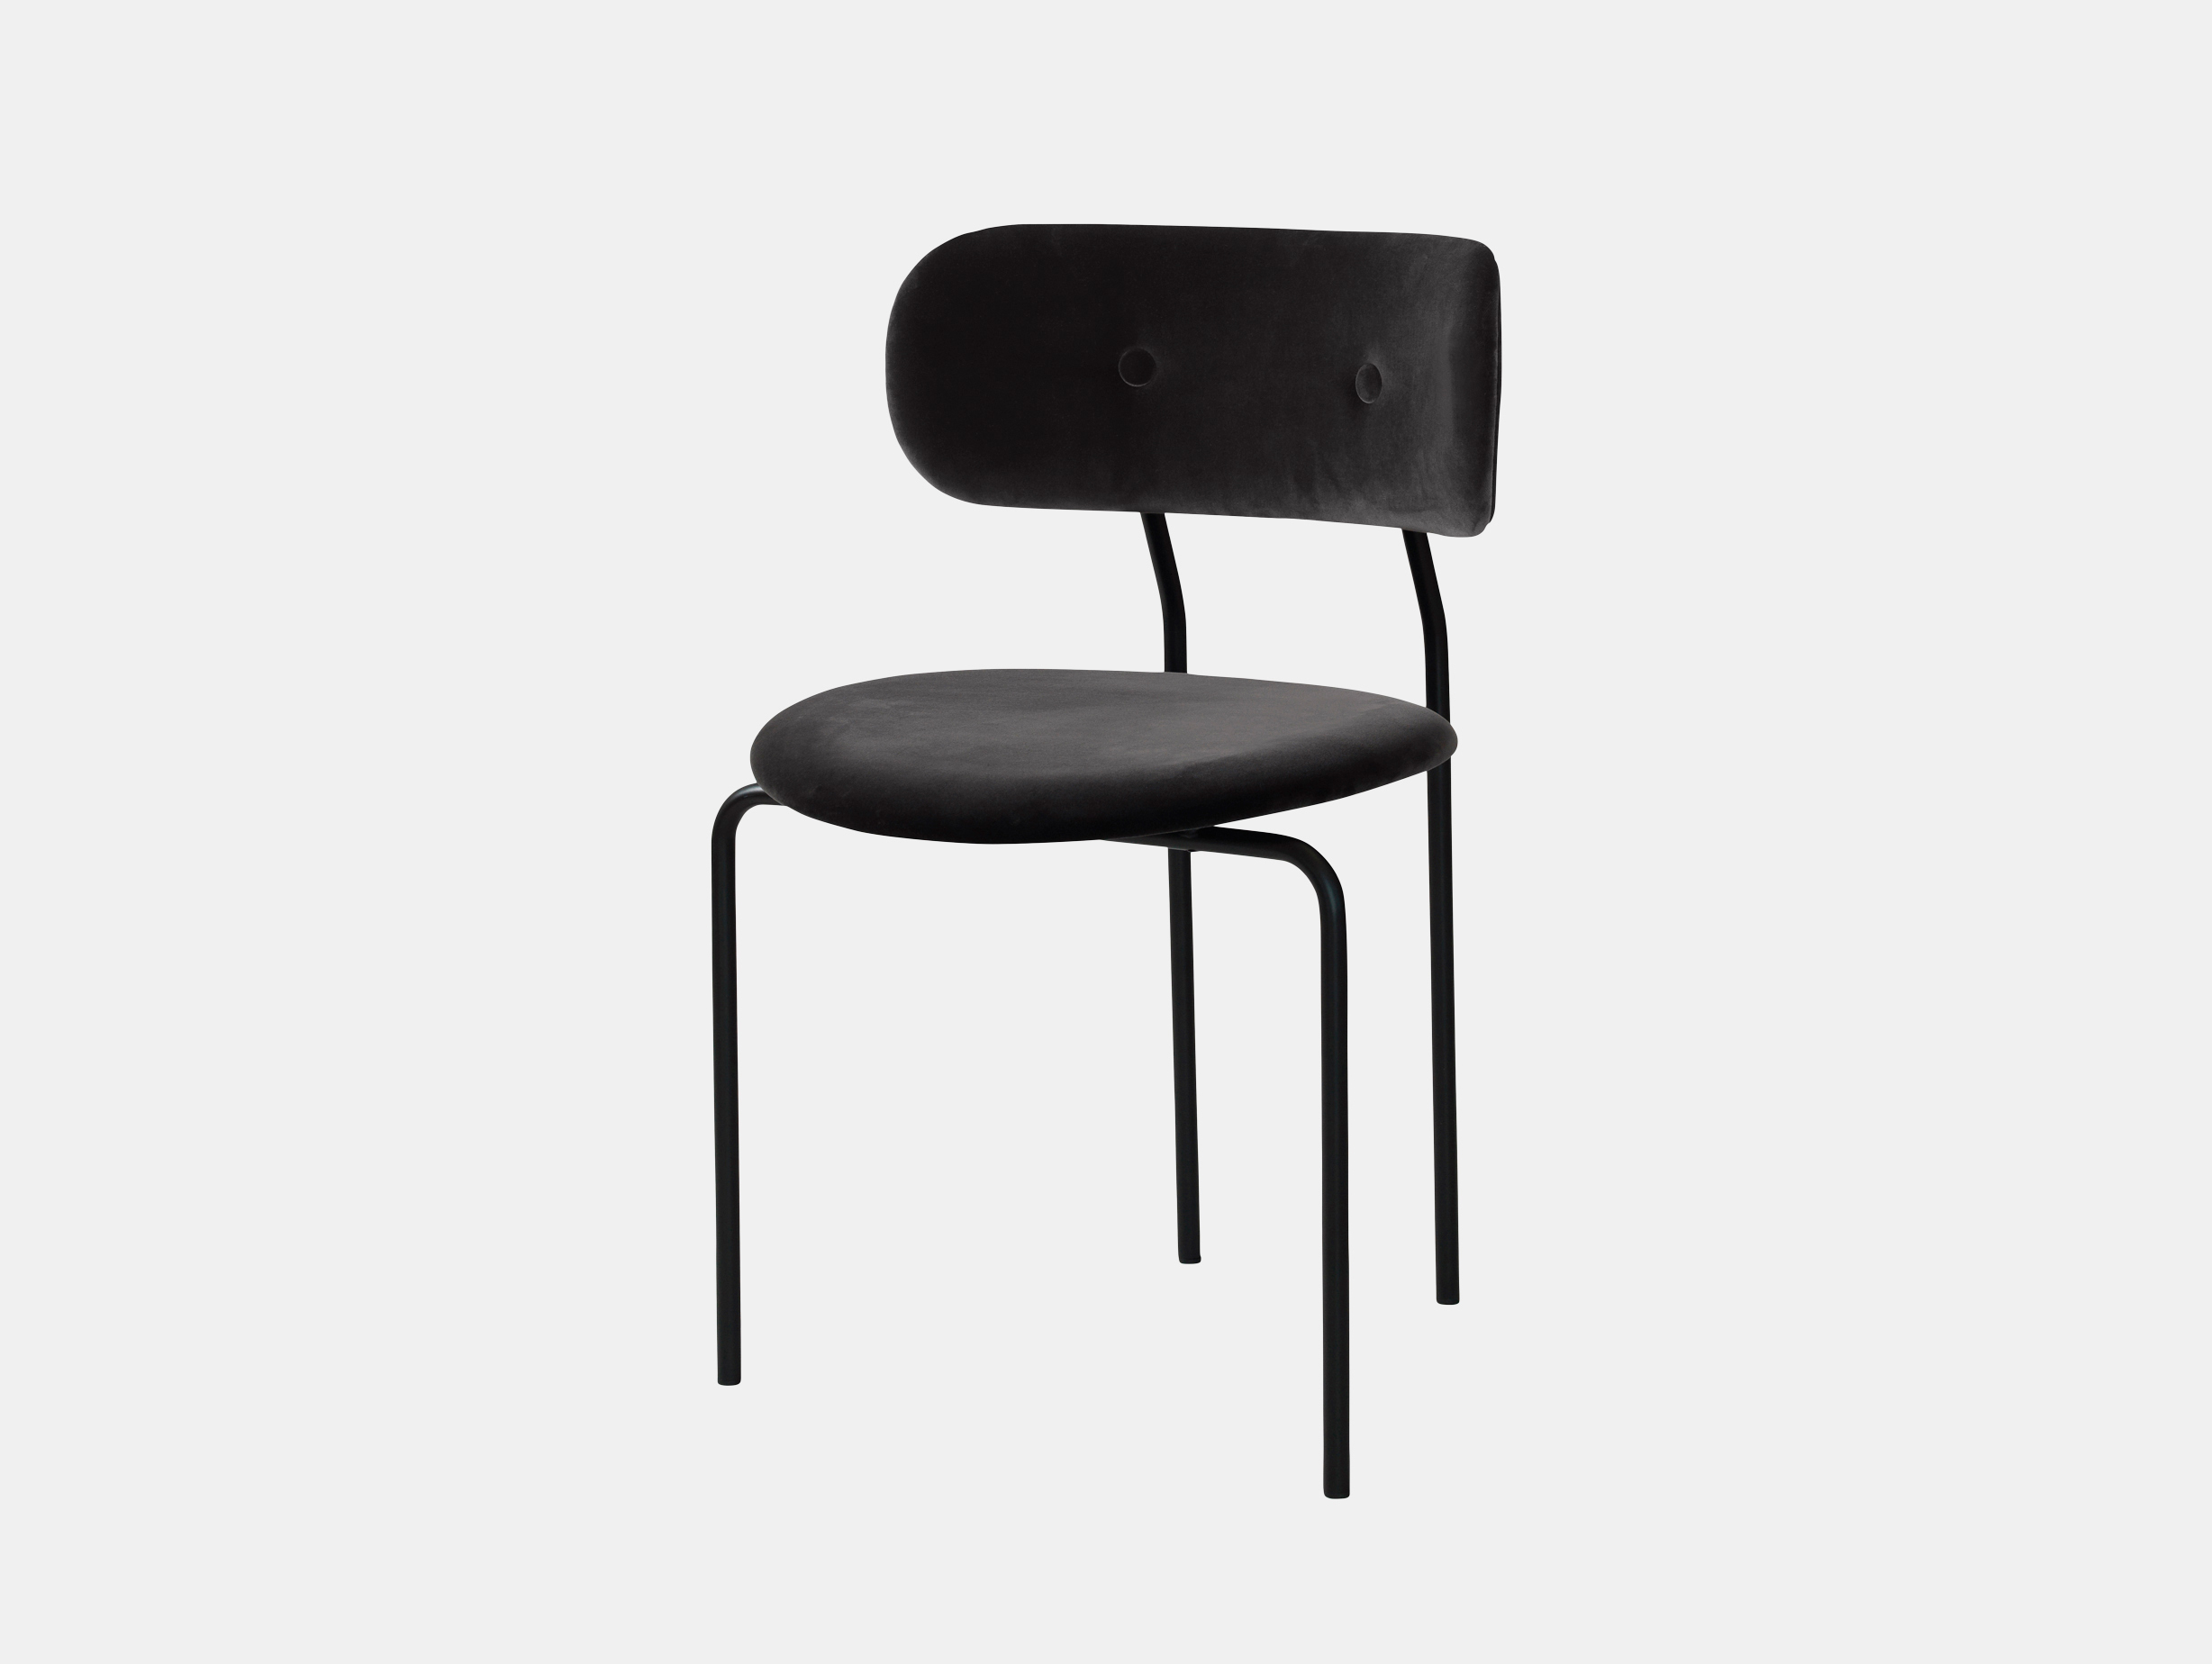 Coco Dining Chair image 1